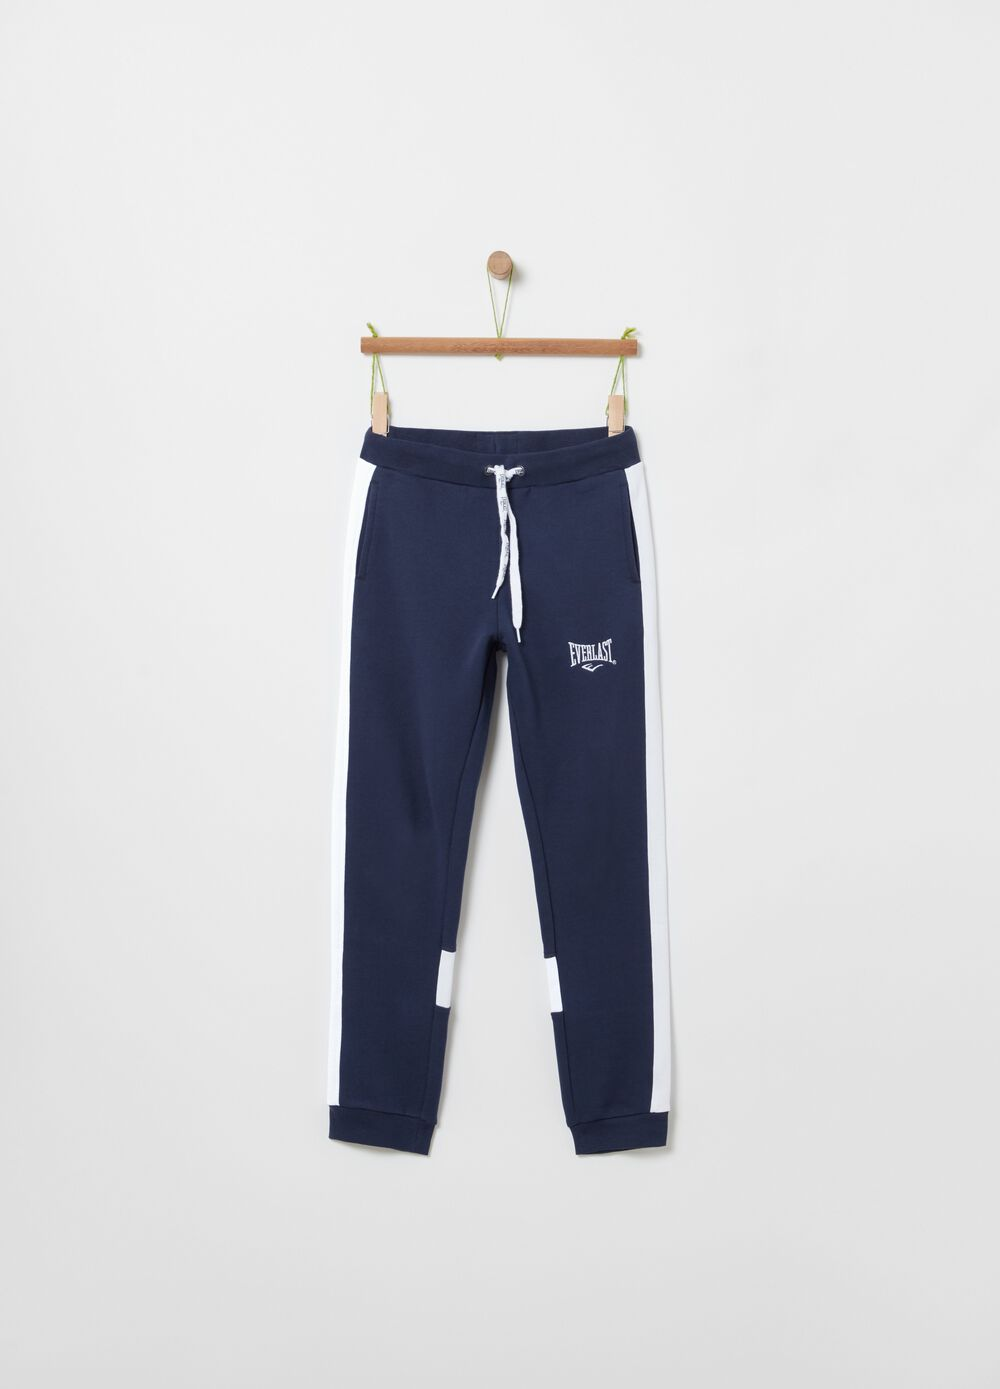 Everlast jogger trousers